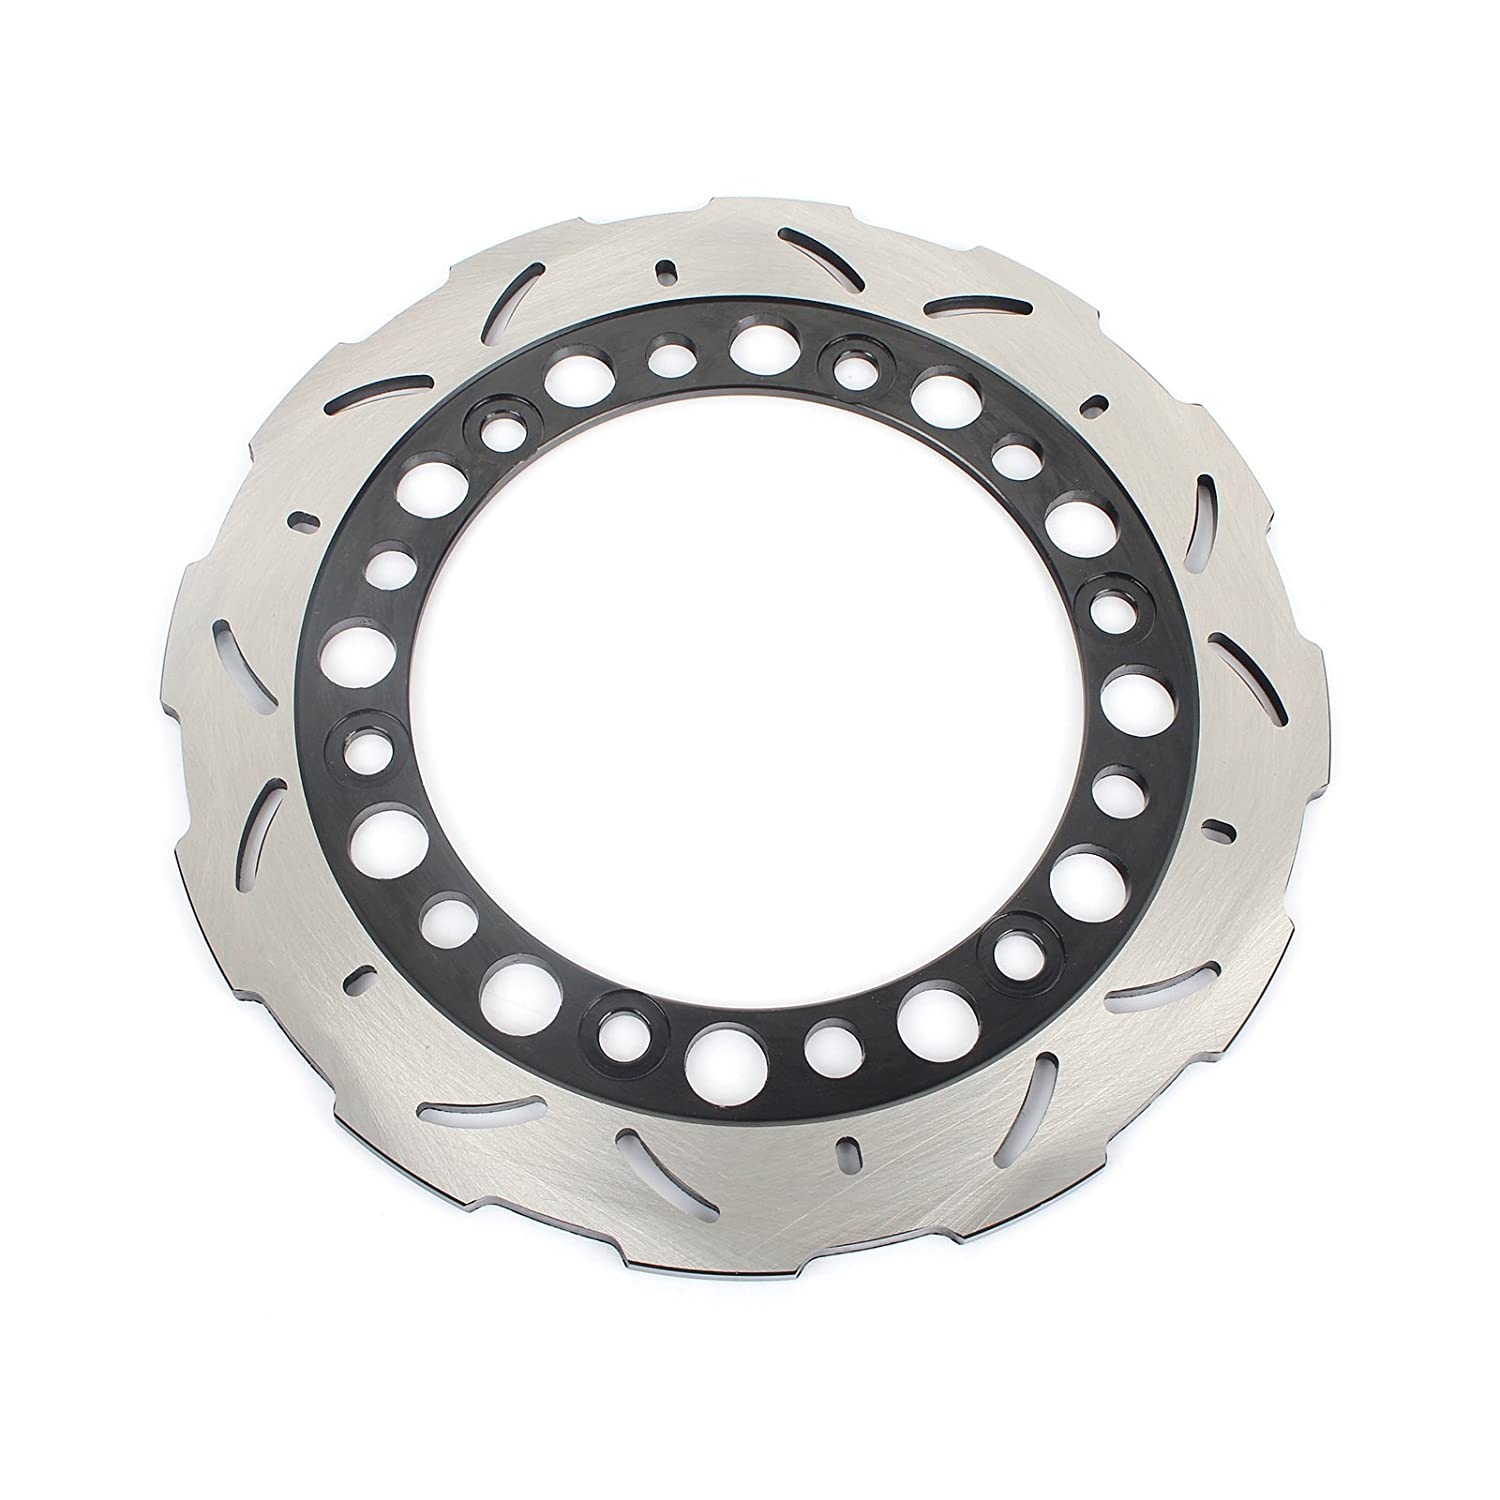 Amazon.com: TARAZON 260mm Front Brake Rotor Disc for ...